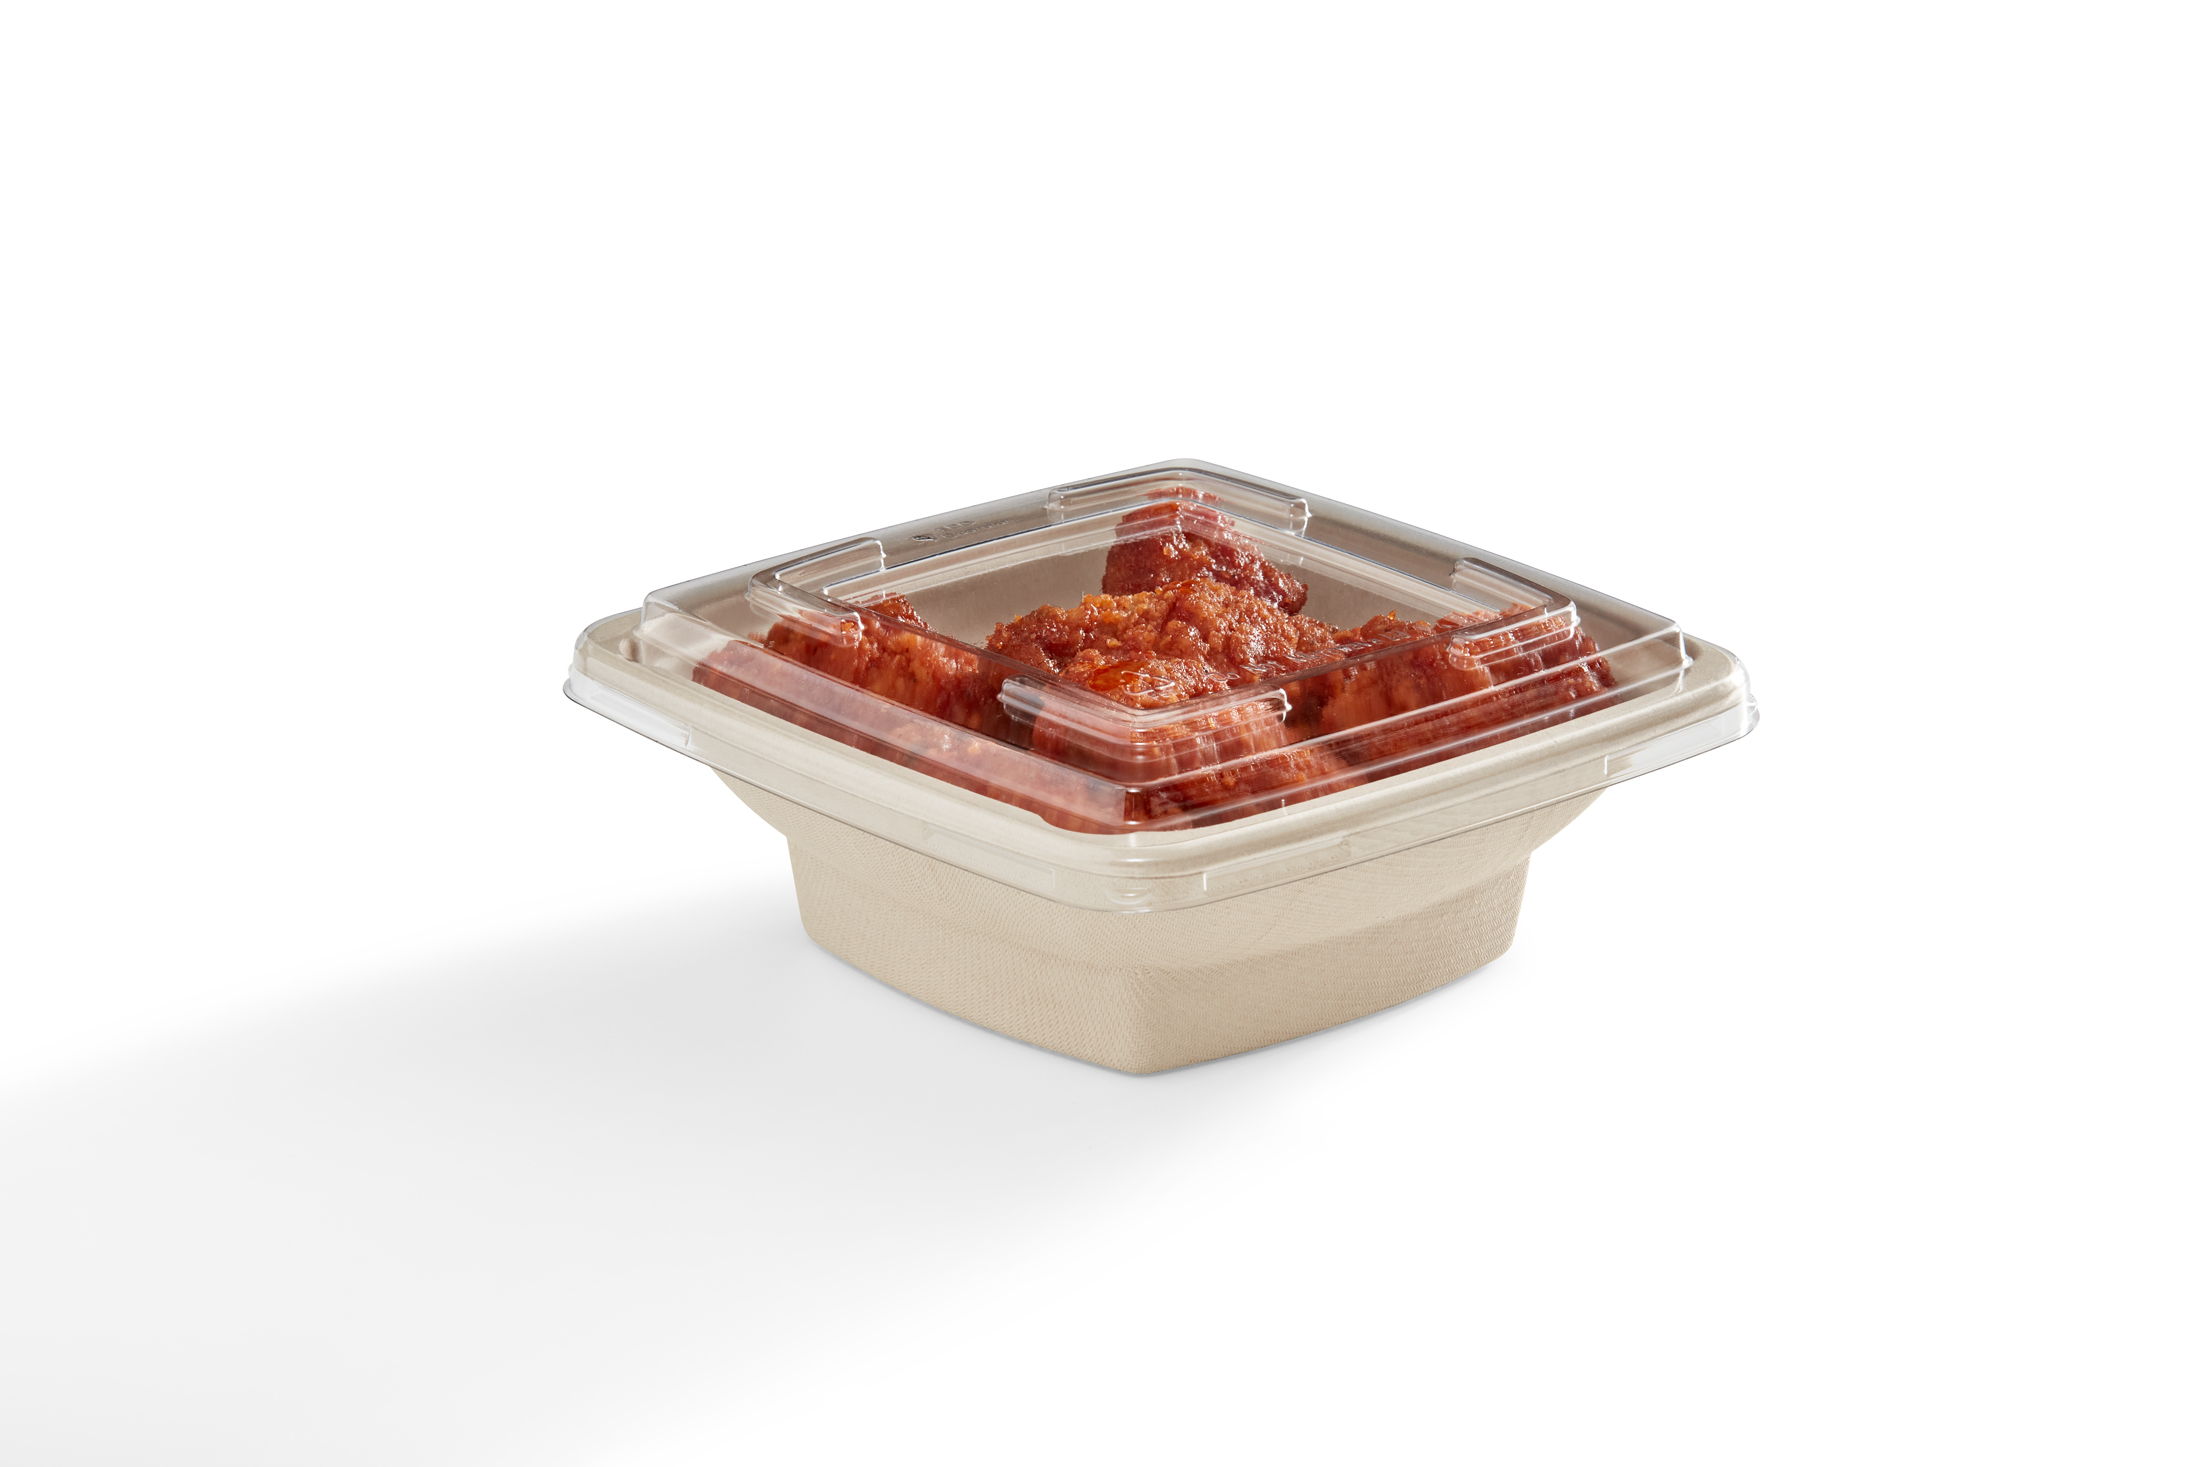 EG-S119-R1 LID Lid for 28 oz Square Tray